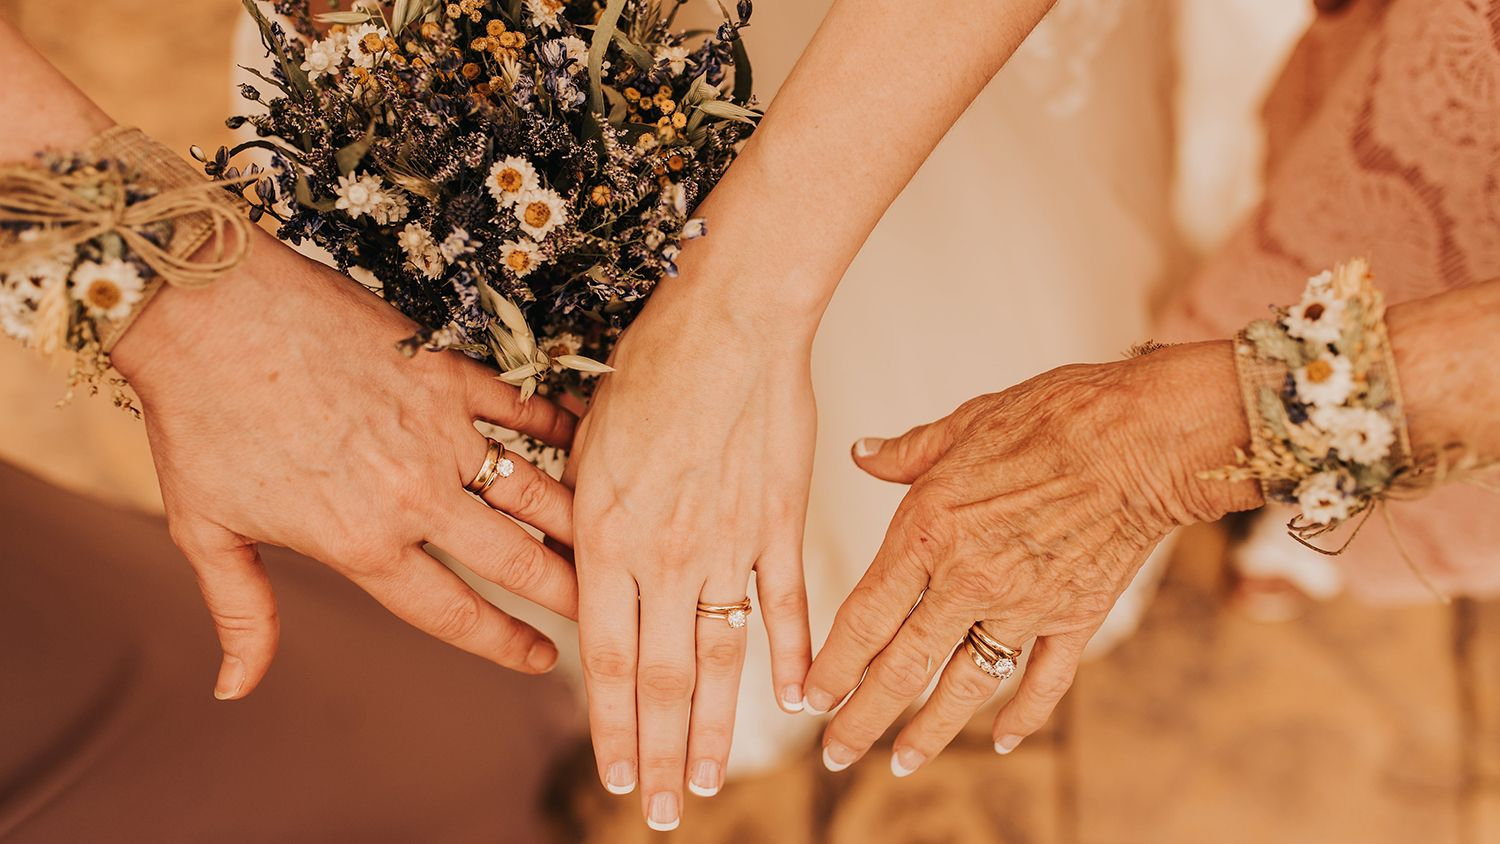 3 Generations of Hands bearing Wedding Rings